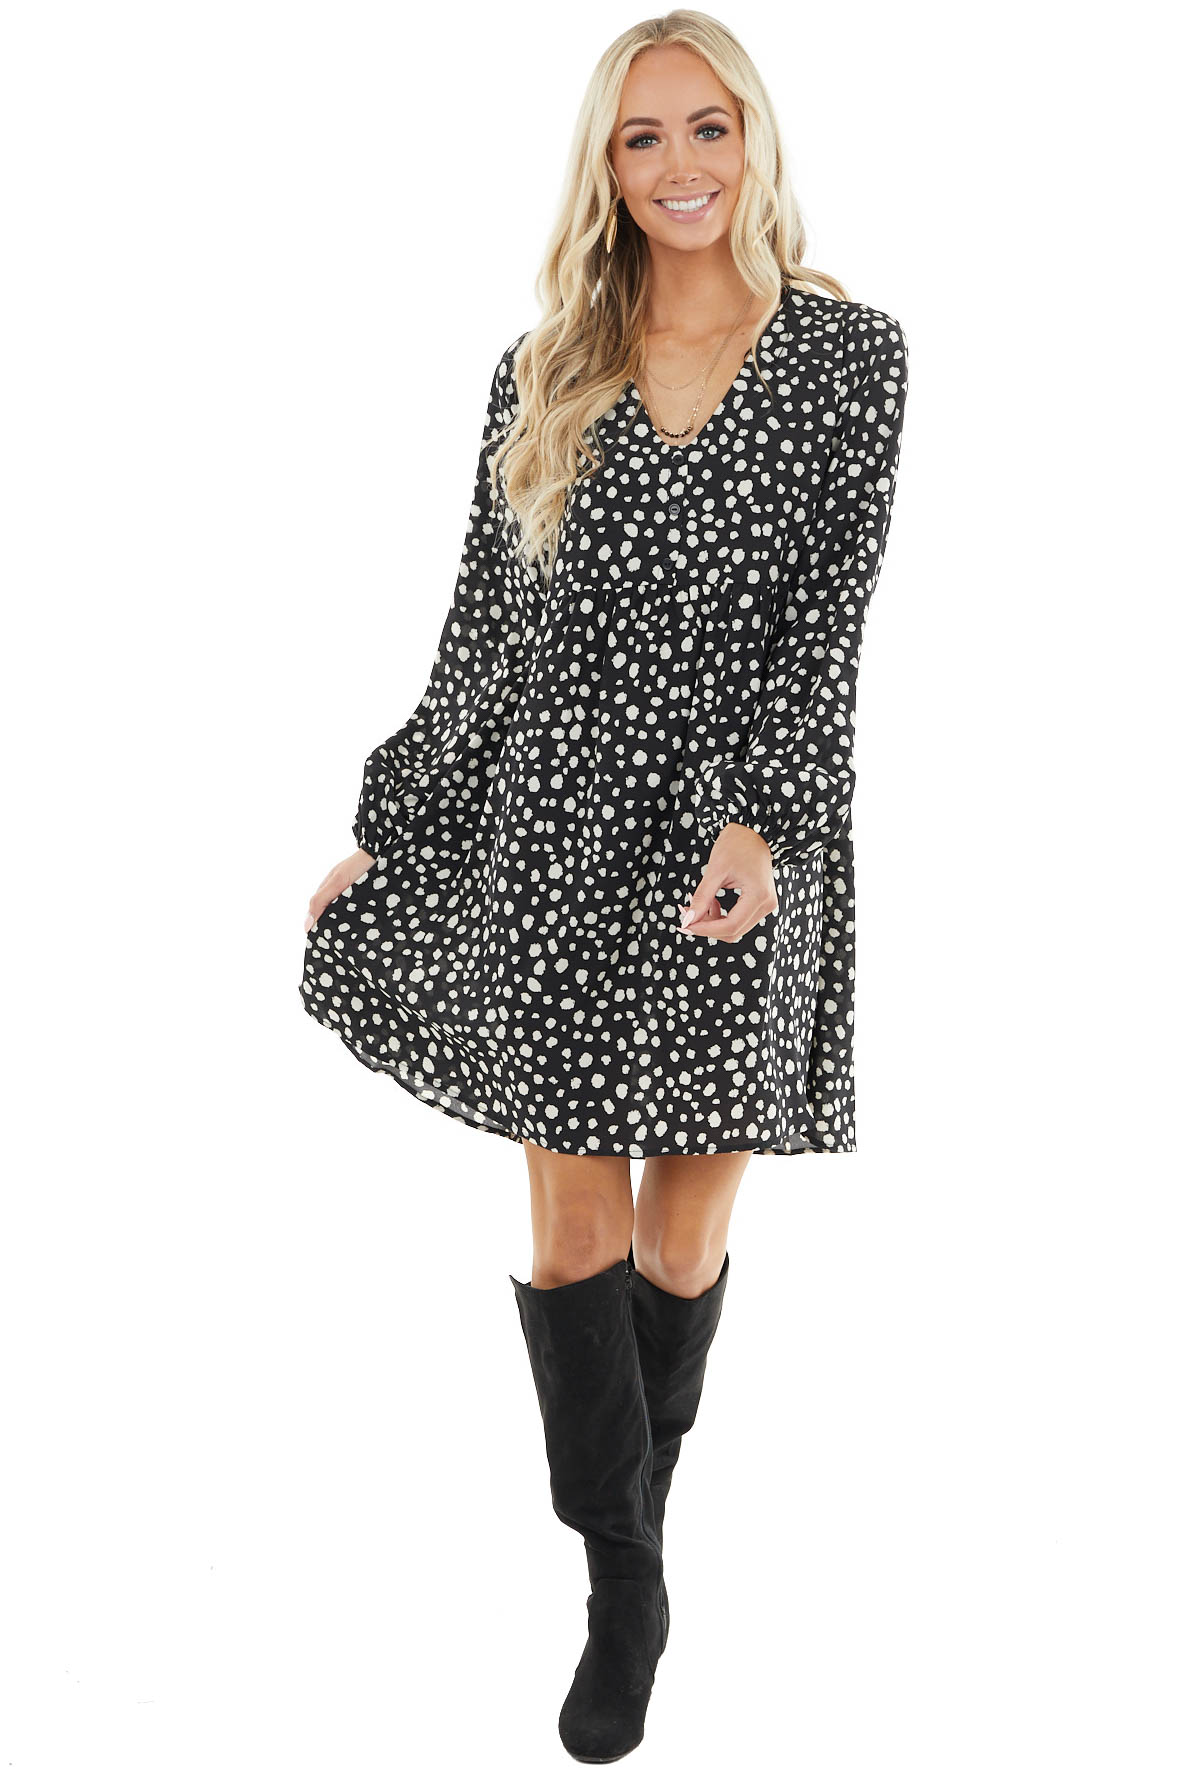 Black Cheetah Print Baby Doll Dress with Puff Sleeves